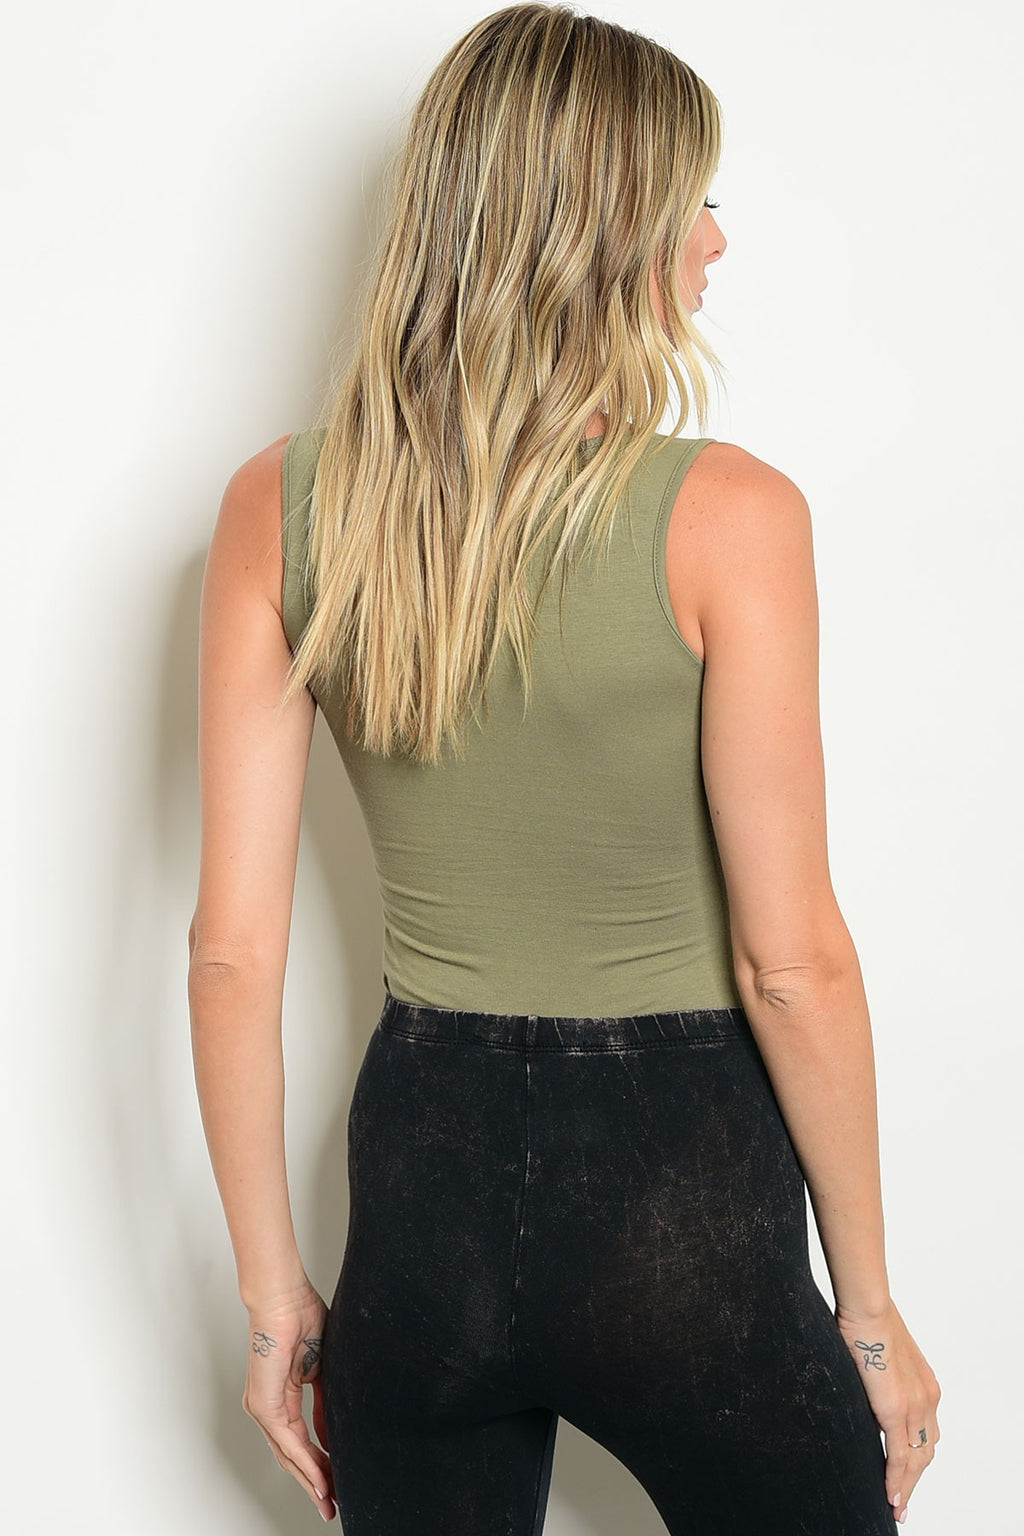 Olive Lace-Up Graphic Bodysuit Top